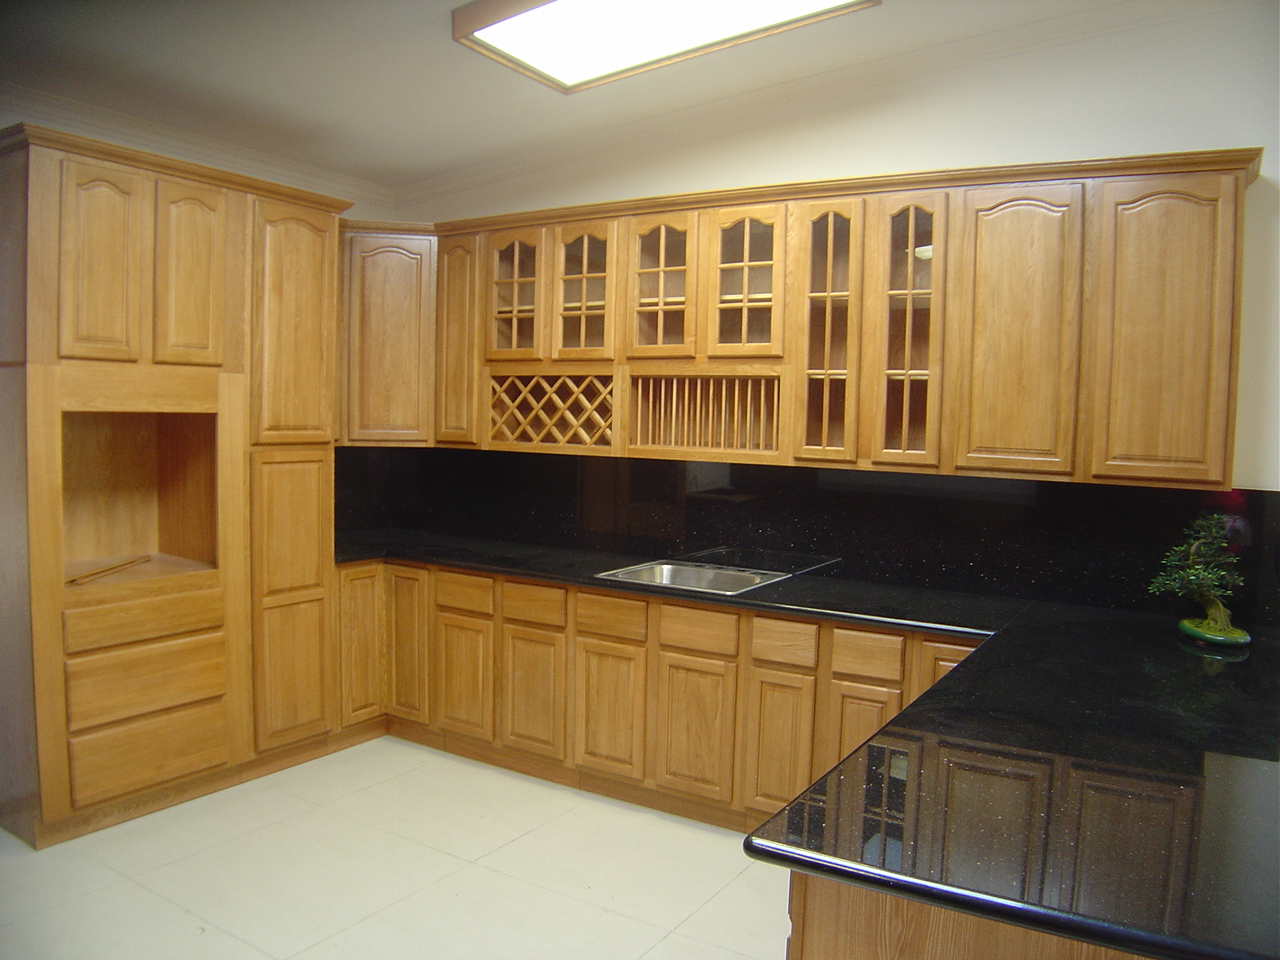 Oak kitchen cabinets for your interior kitchen minimalist for Interior design ideas for kitchen cabinets